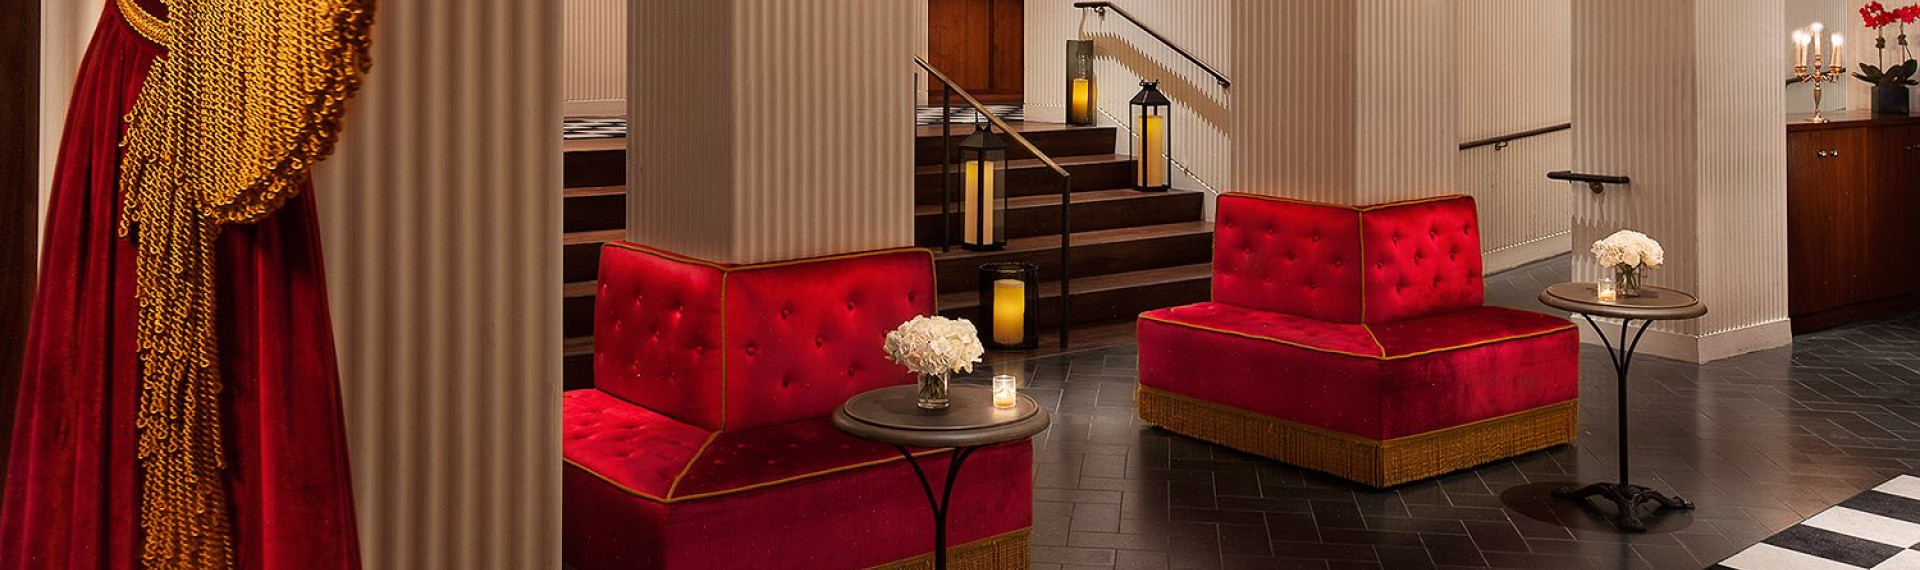 lobby area with red couches connected to columns with gold fringe accents and candle lanterns and other lights around the room